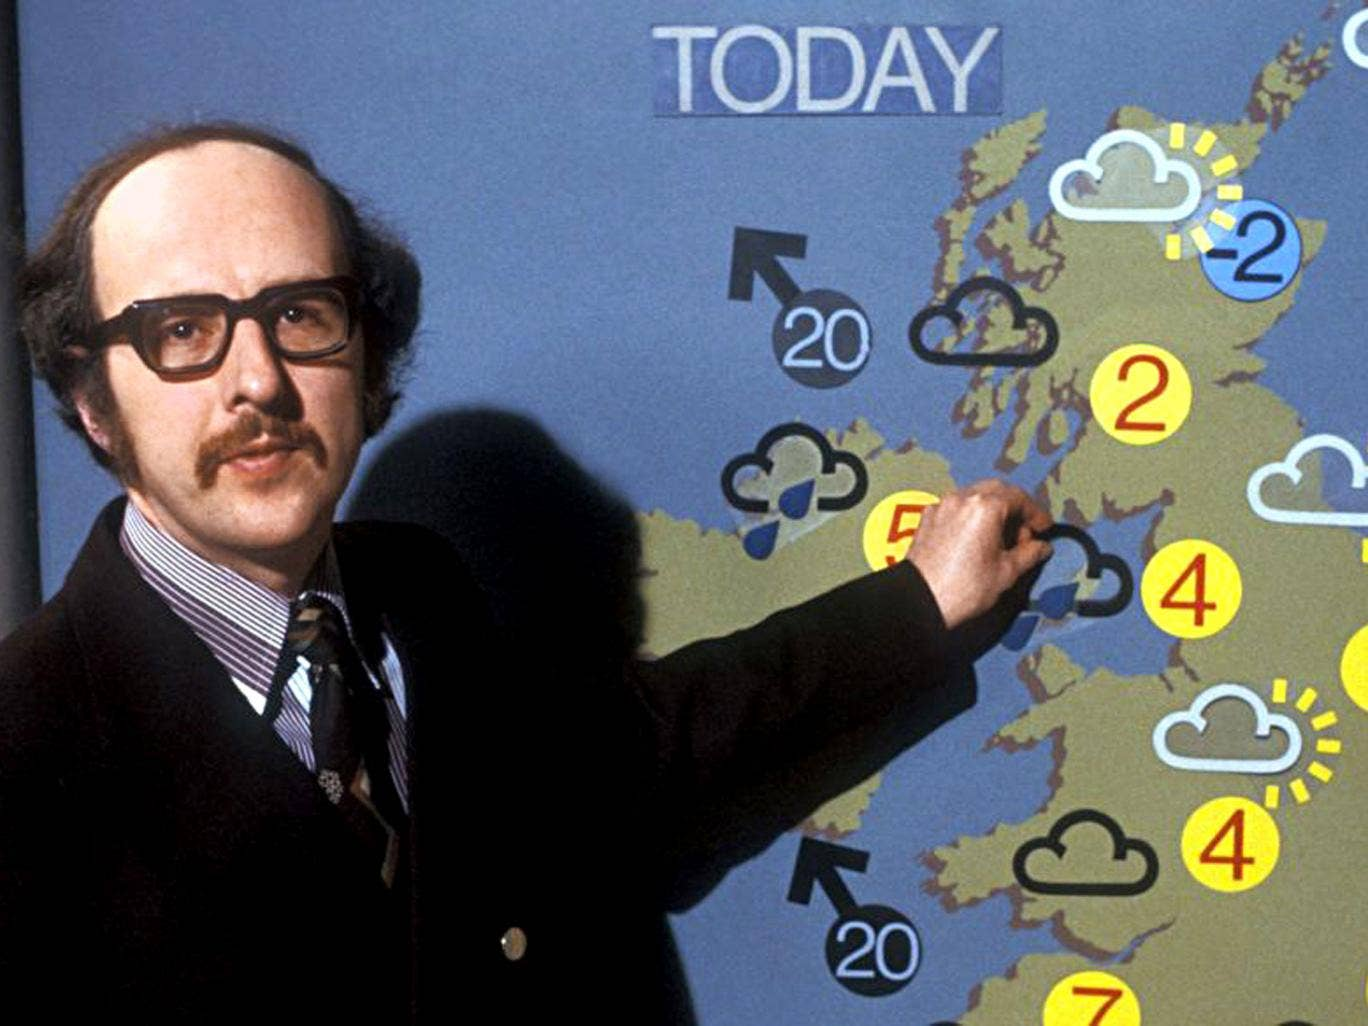 Calm before the storm: BBC weather forecaster Michael Fish in 1979